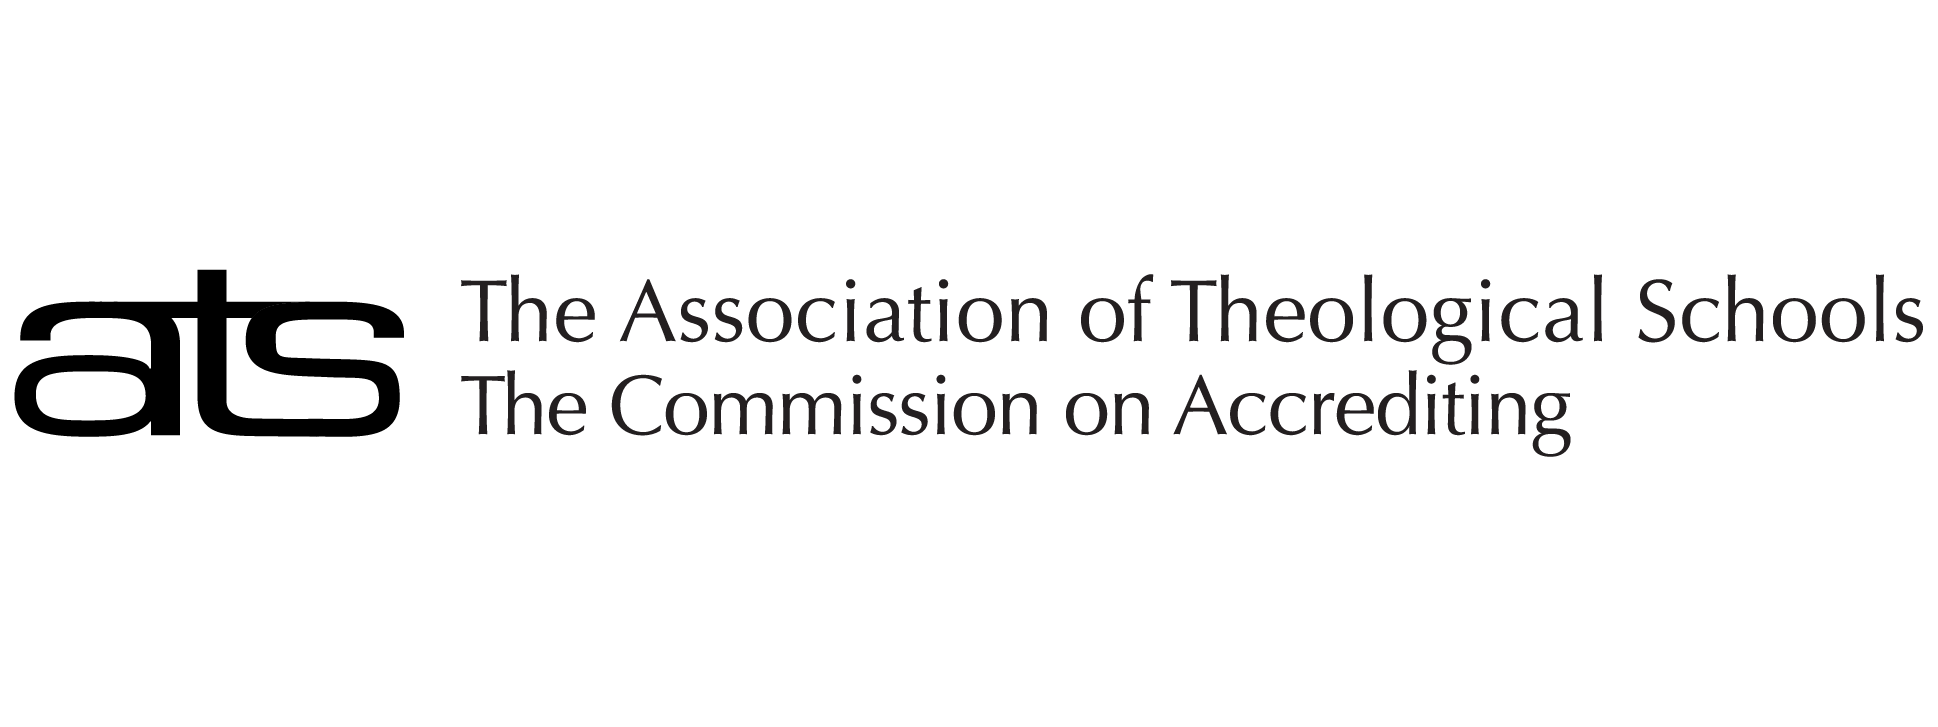 Association of Theological Schools, ATS